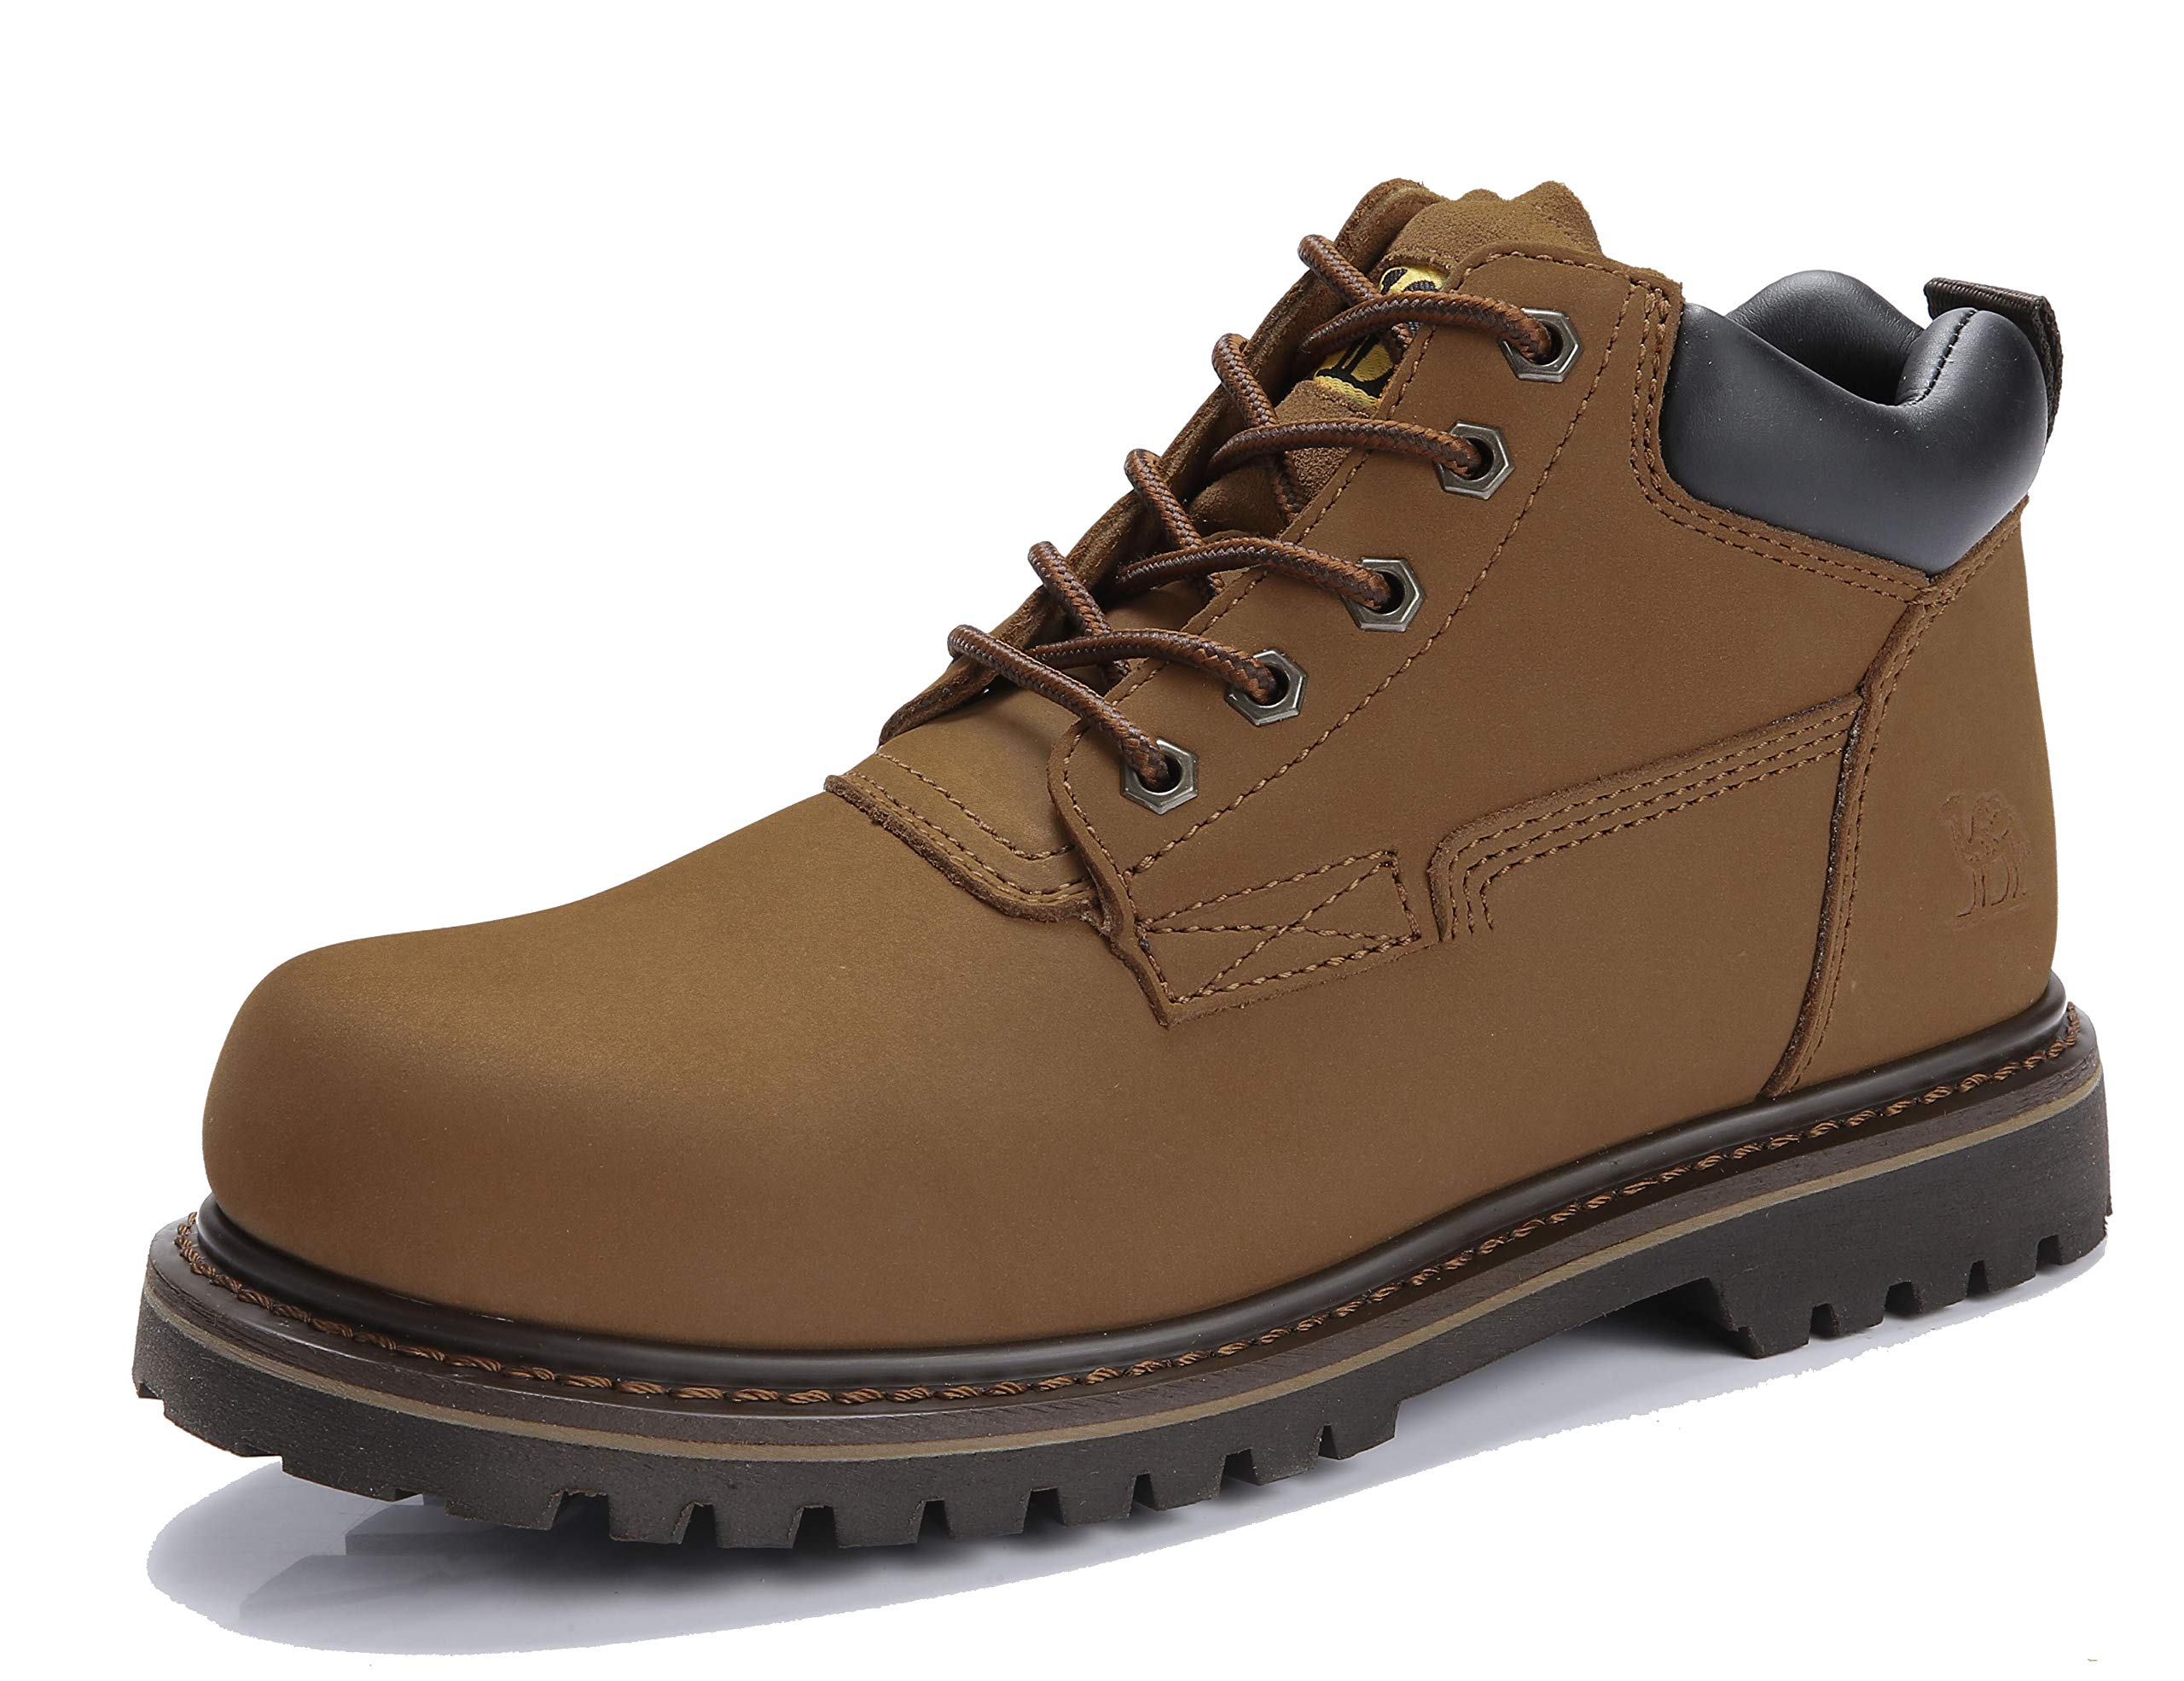 CAMEL CROWN Men's Work Boots Oxford Leather Boots high top Comfortable Soft Shoes Waterproof Outdoor Walking Hiking Combat Boots